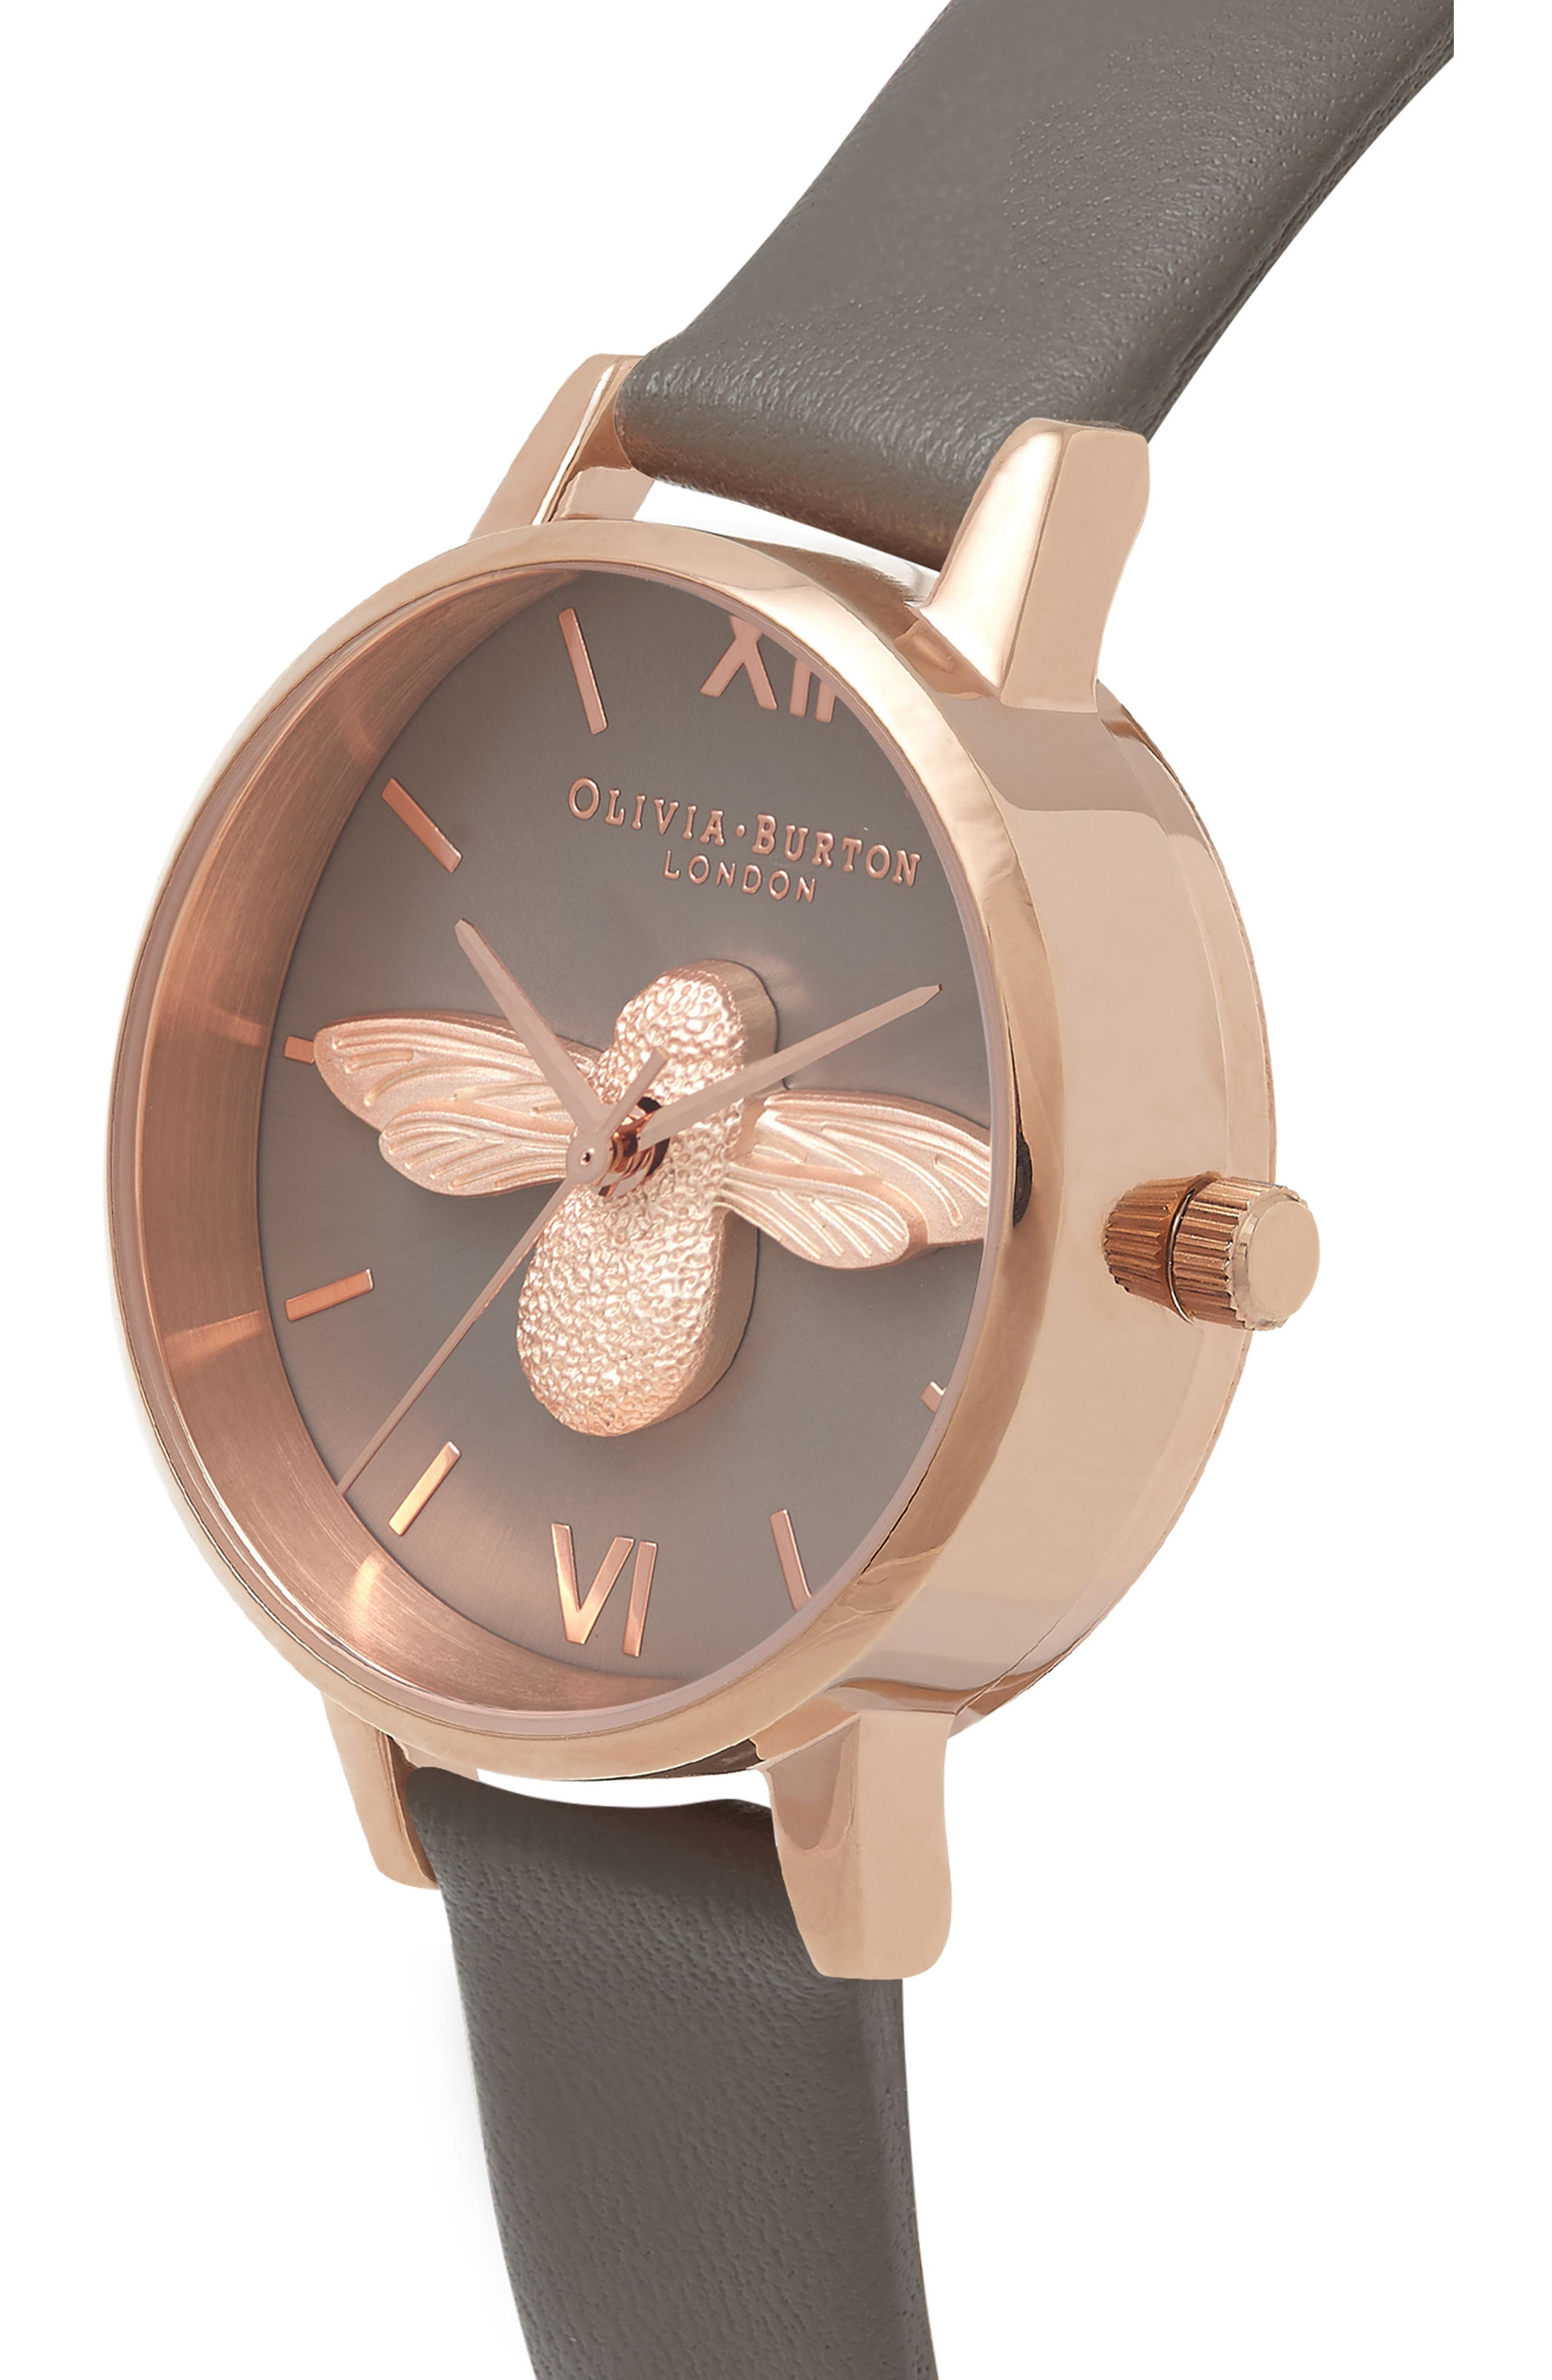 3D Bee Leather Strap Watch, 30mm,                             Alternate thumbnail 4, color,                             LONDON GREY/ BEE/ ROSE GOLD